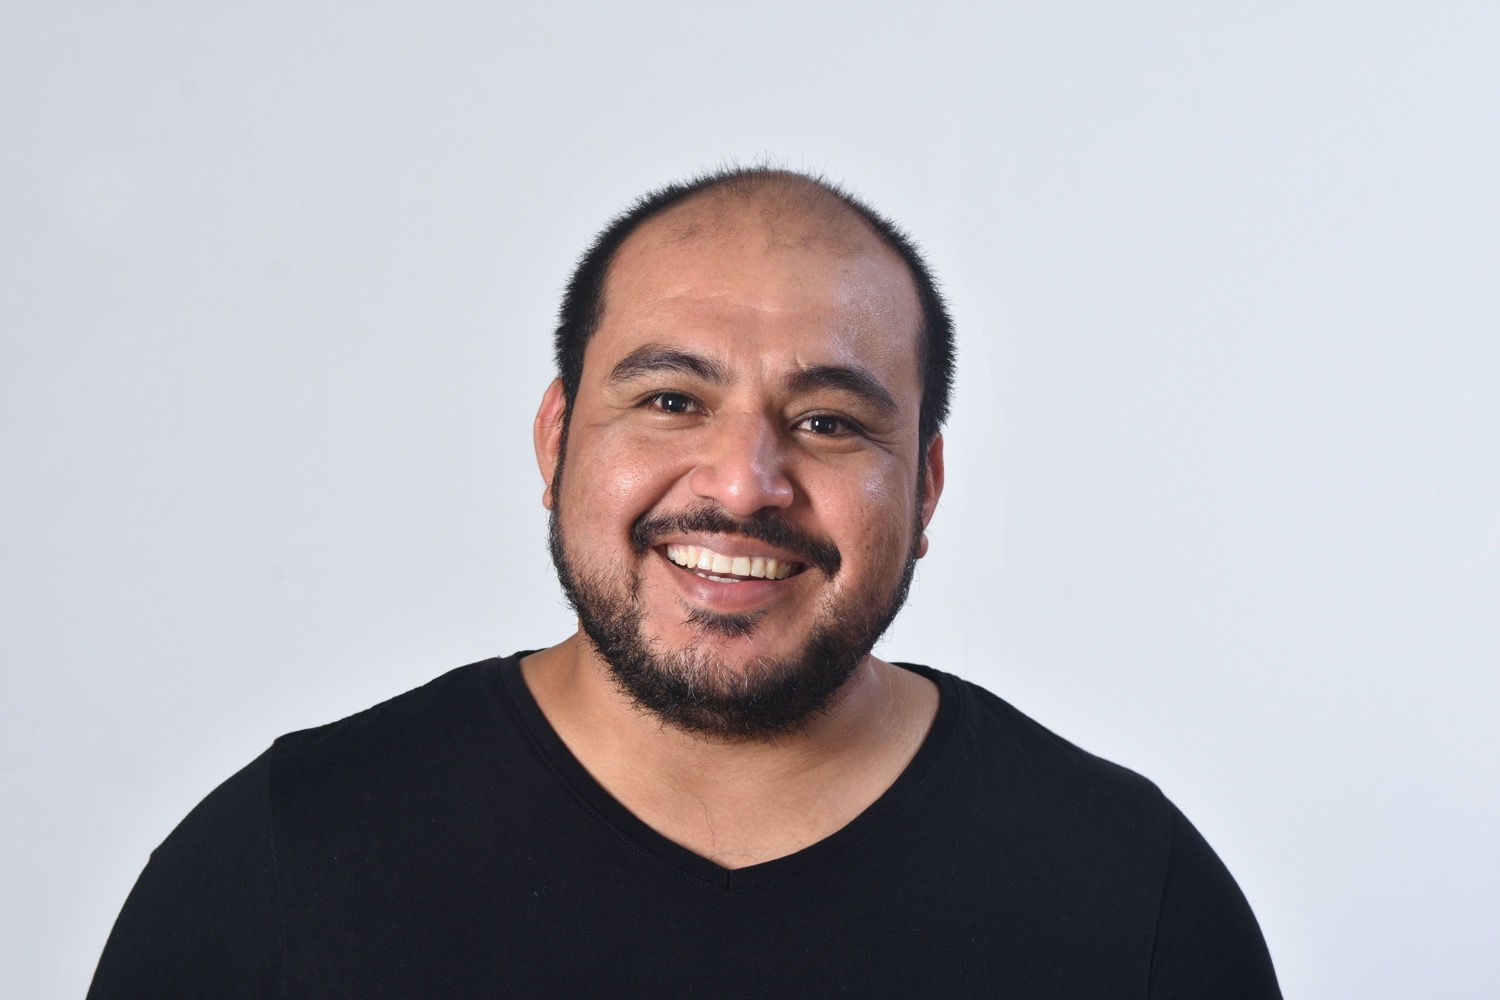 Photo of a smiling man